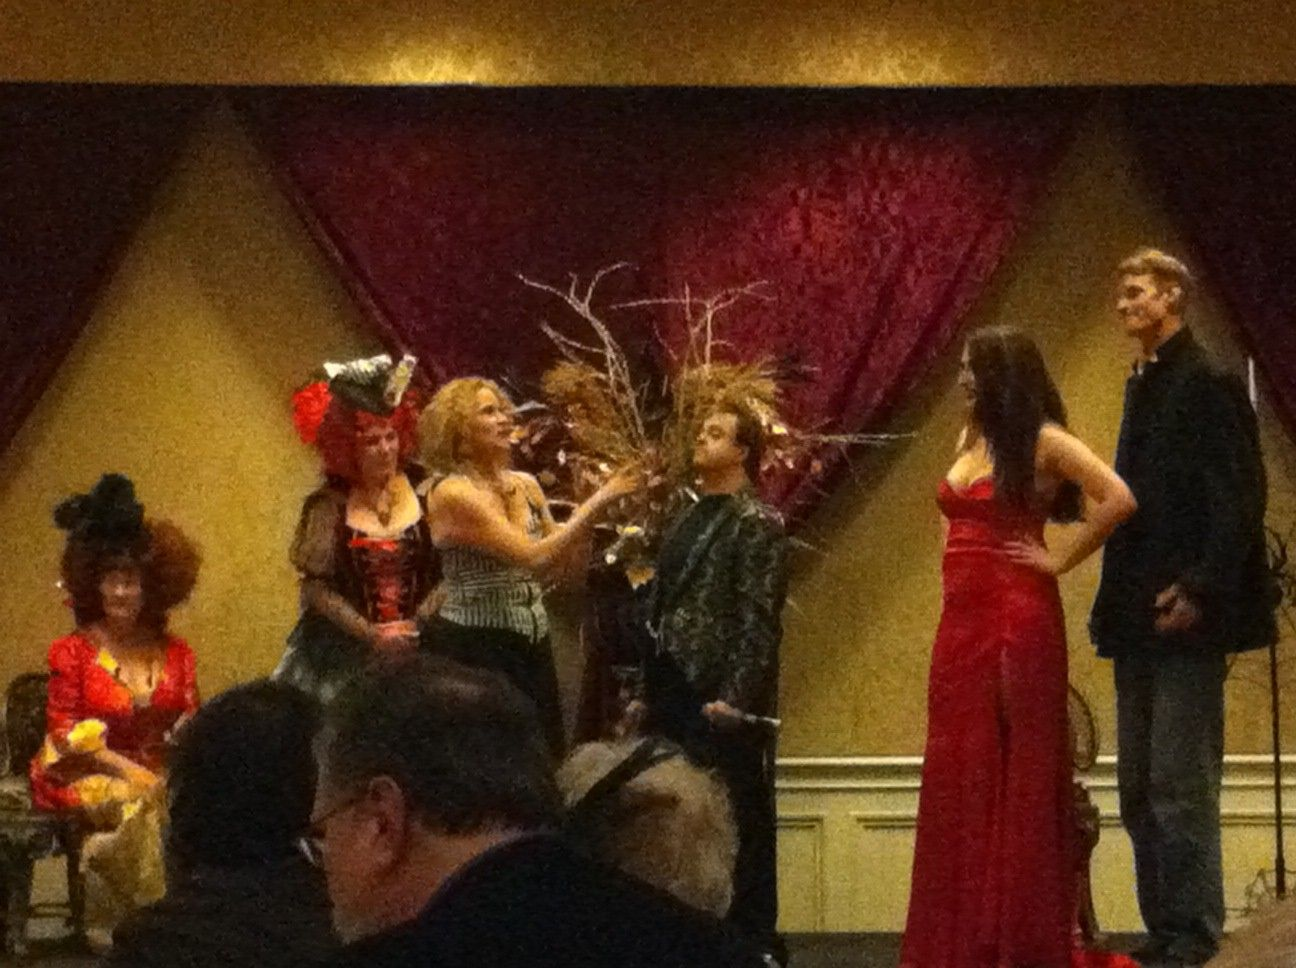 Heather Graham's dinner theater Saturday night at her Writers for New Orleans conference.